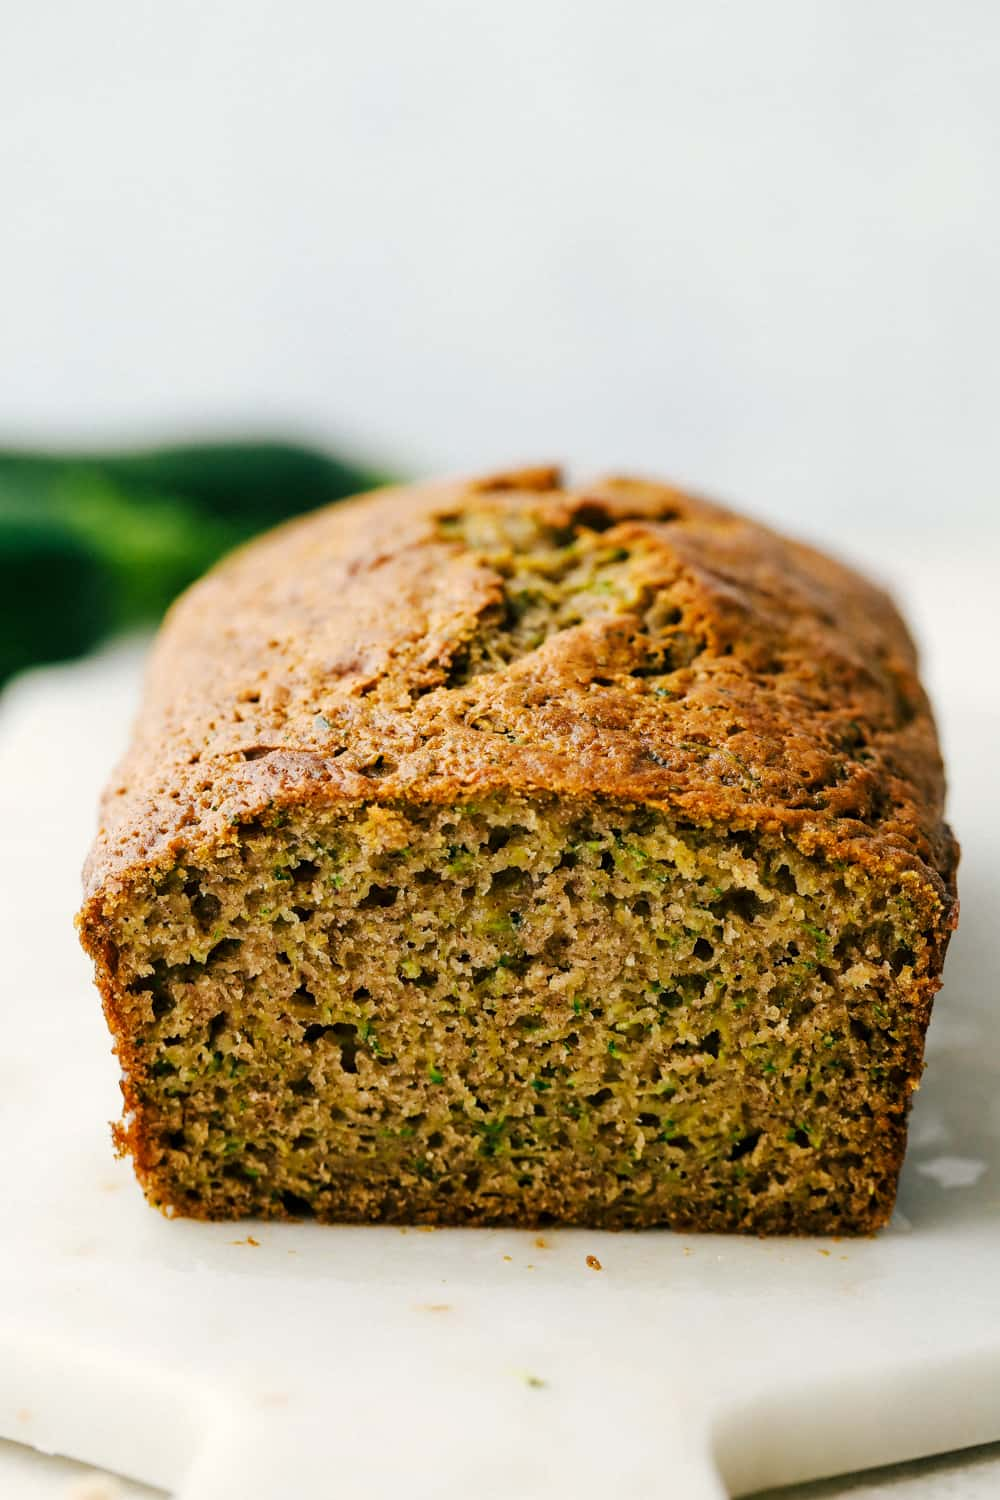 Zucchini bread facing out with the bread sliced.